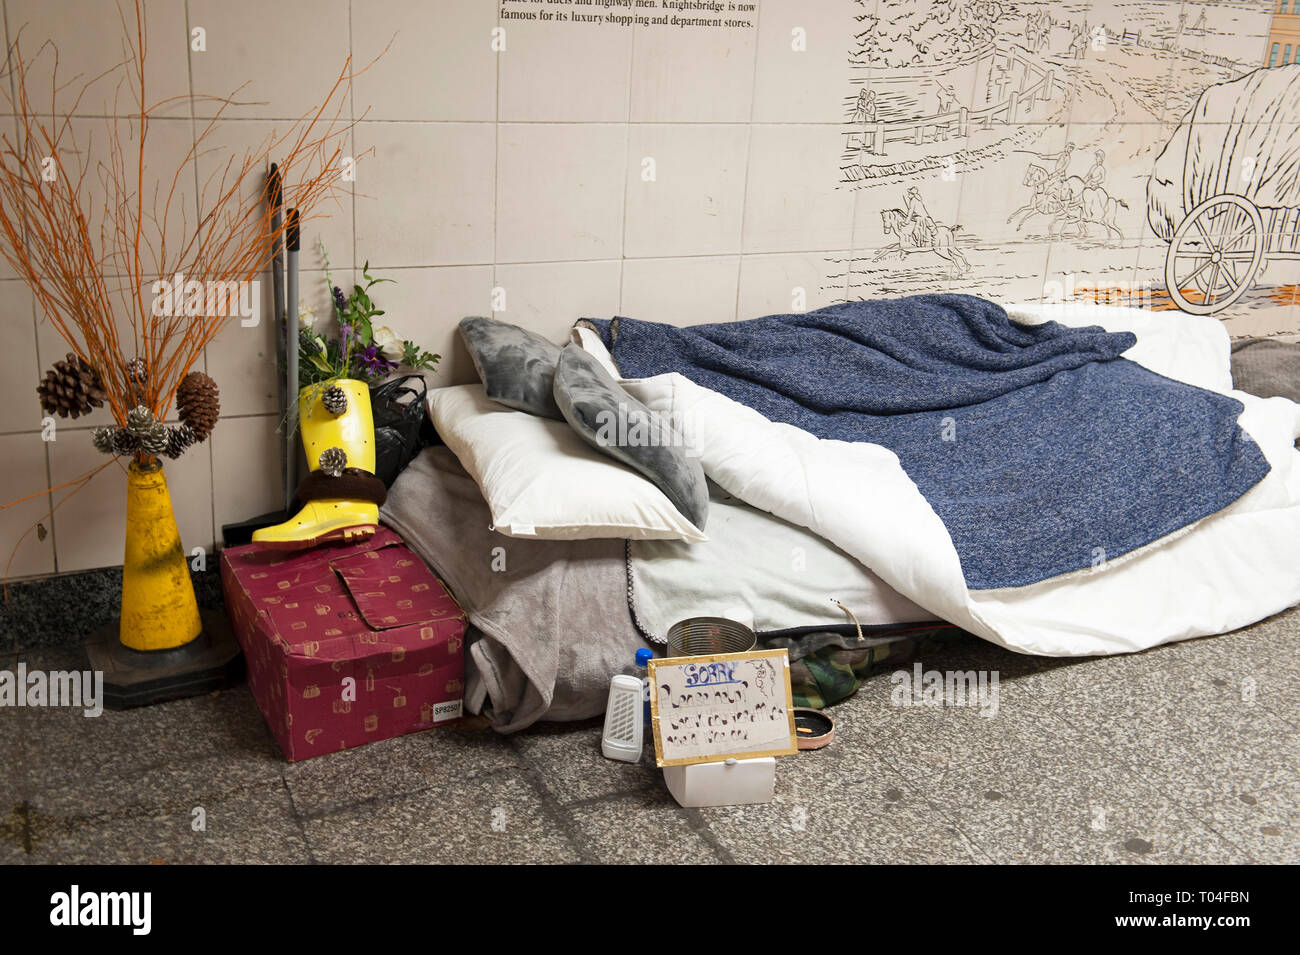 London, England, 26th March, 2019. Homeless person's bed in the Hyde Park Corner underpass. © Karl Nesh - Stock Image